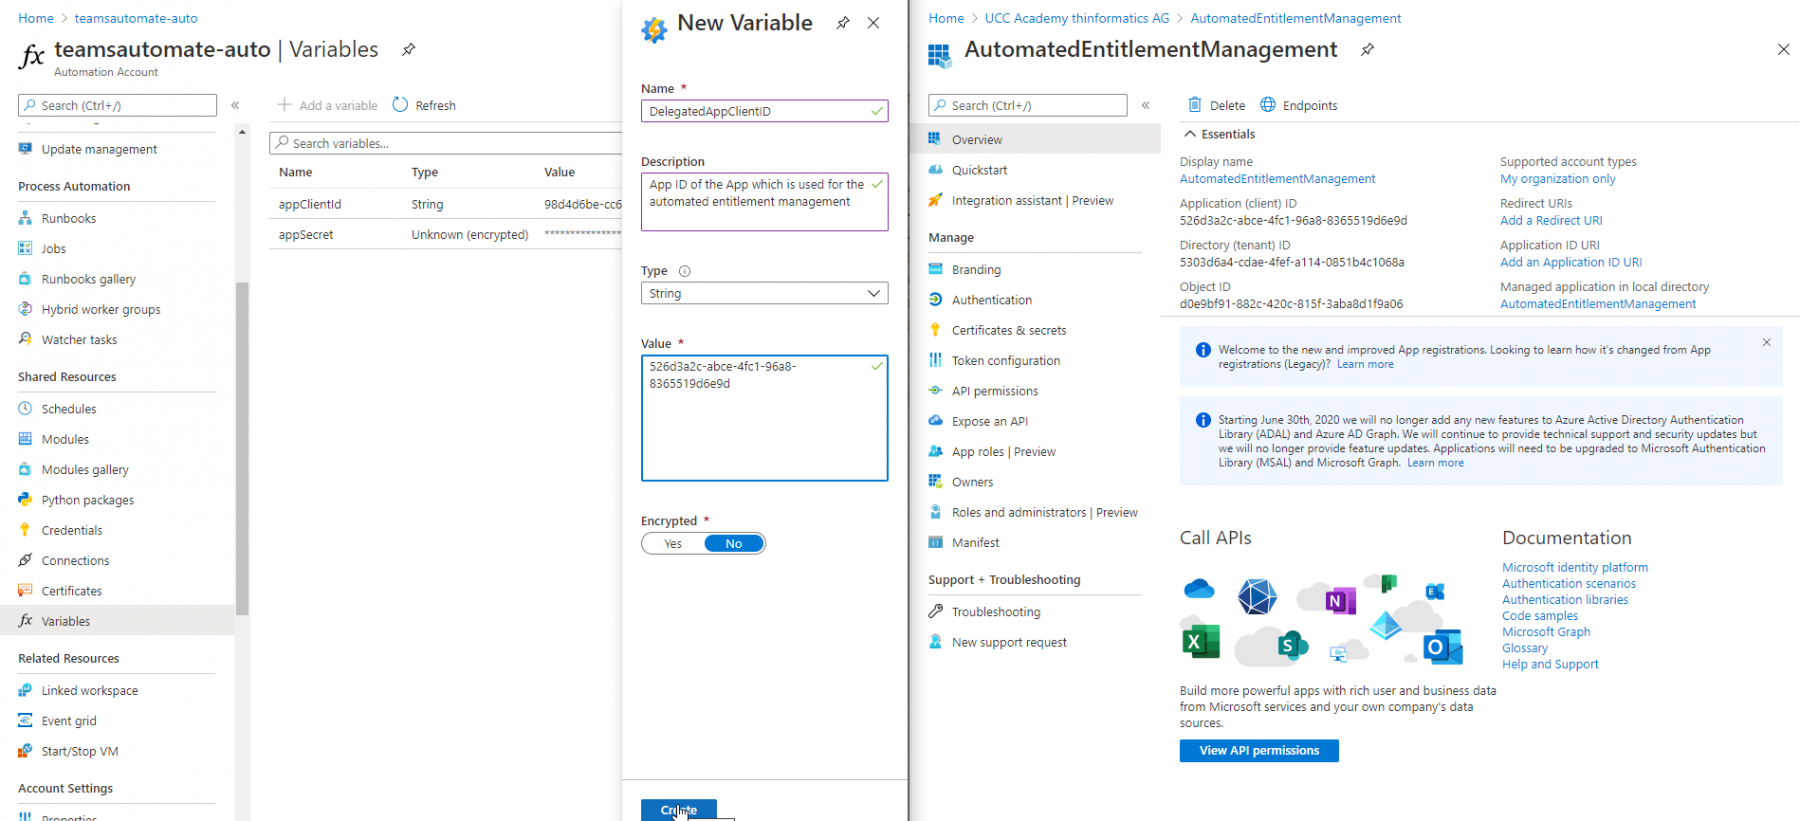 2020-09-16-18_56_34-New-Variable-Microsoft-Azure-and-18-more-pages-UCC-ADM-Microsoft​-Edge